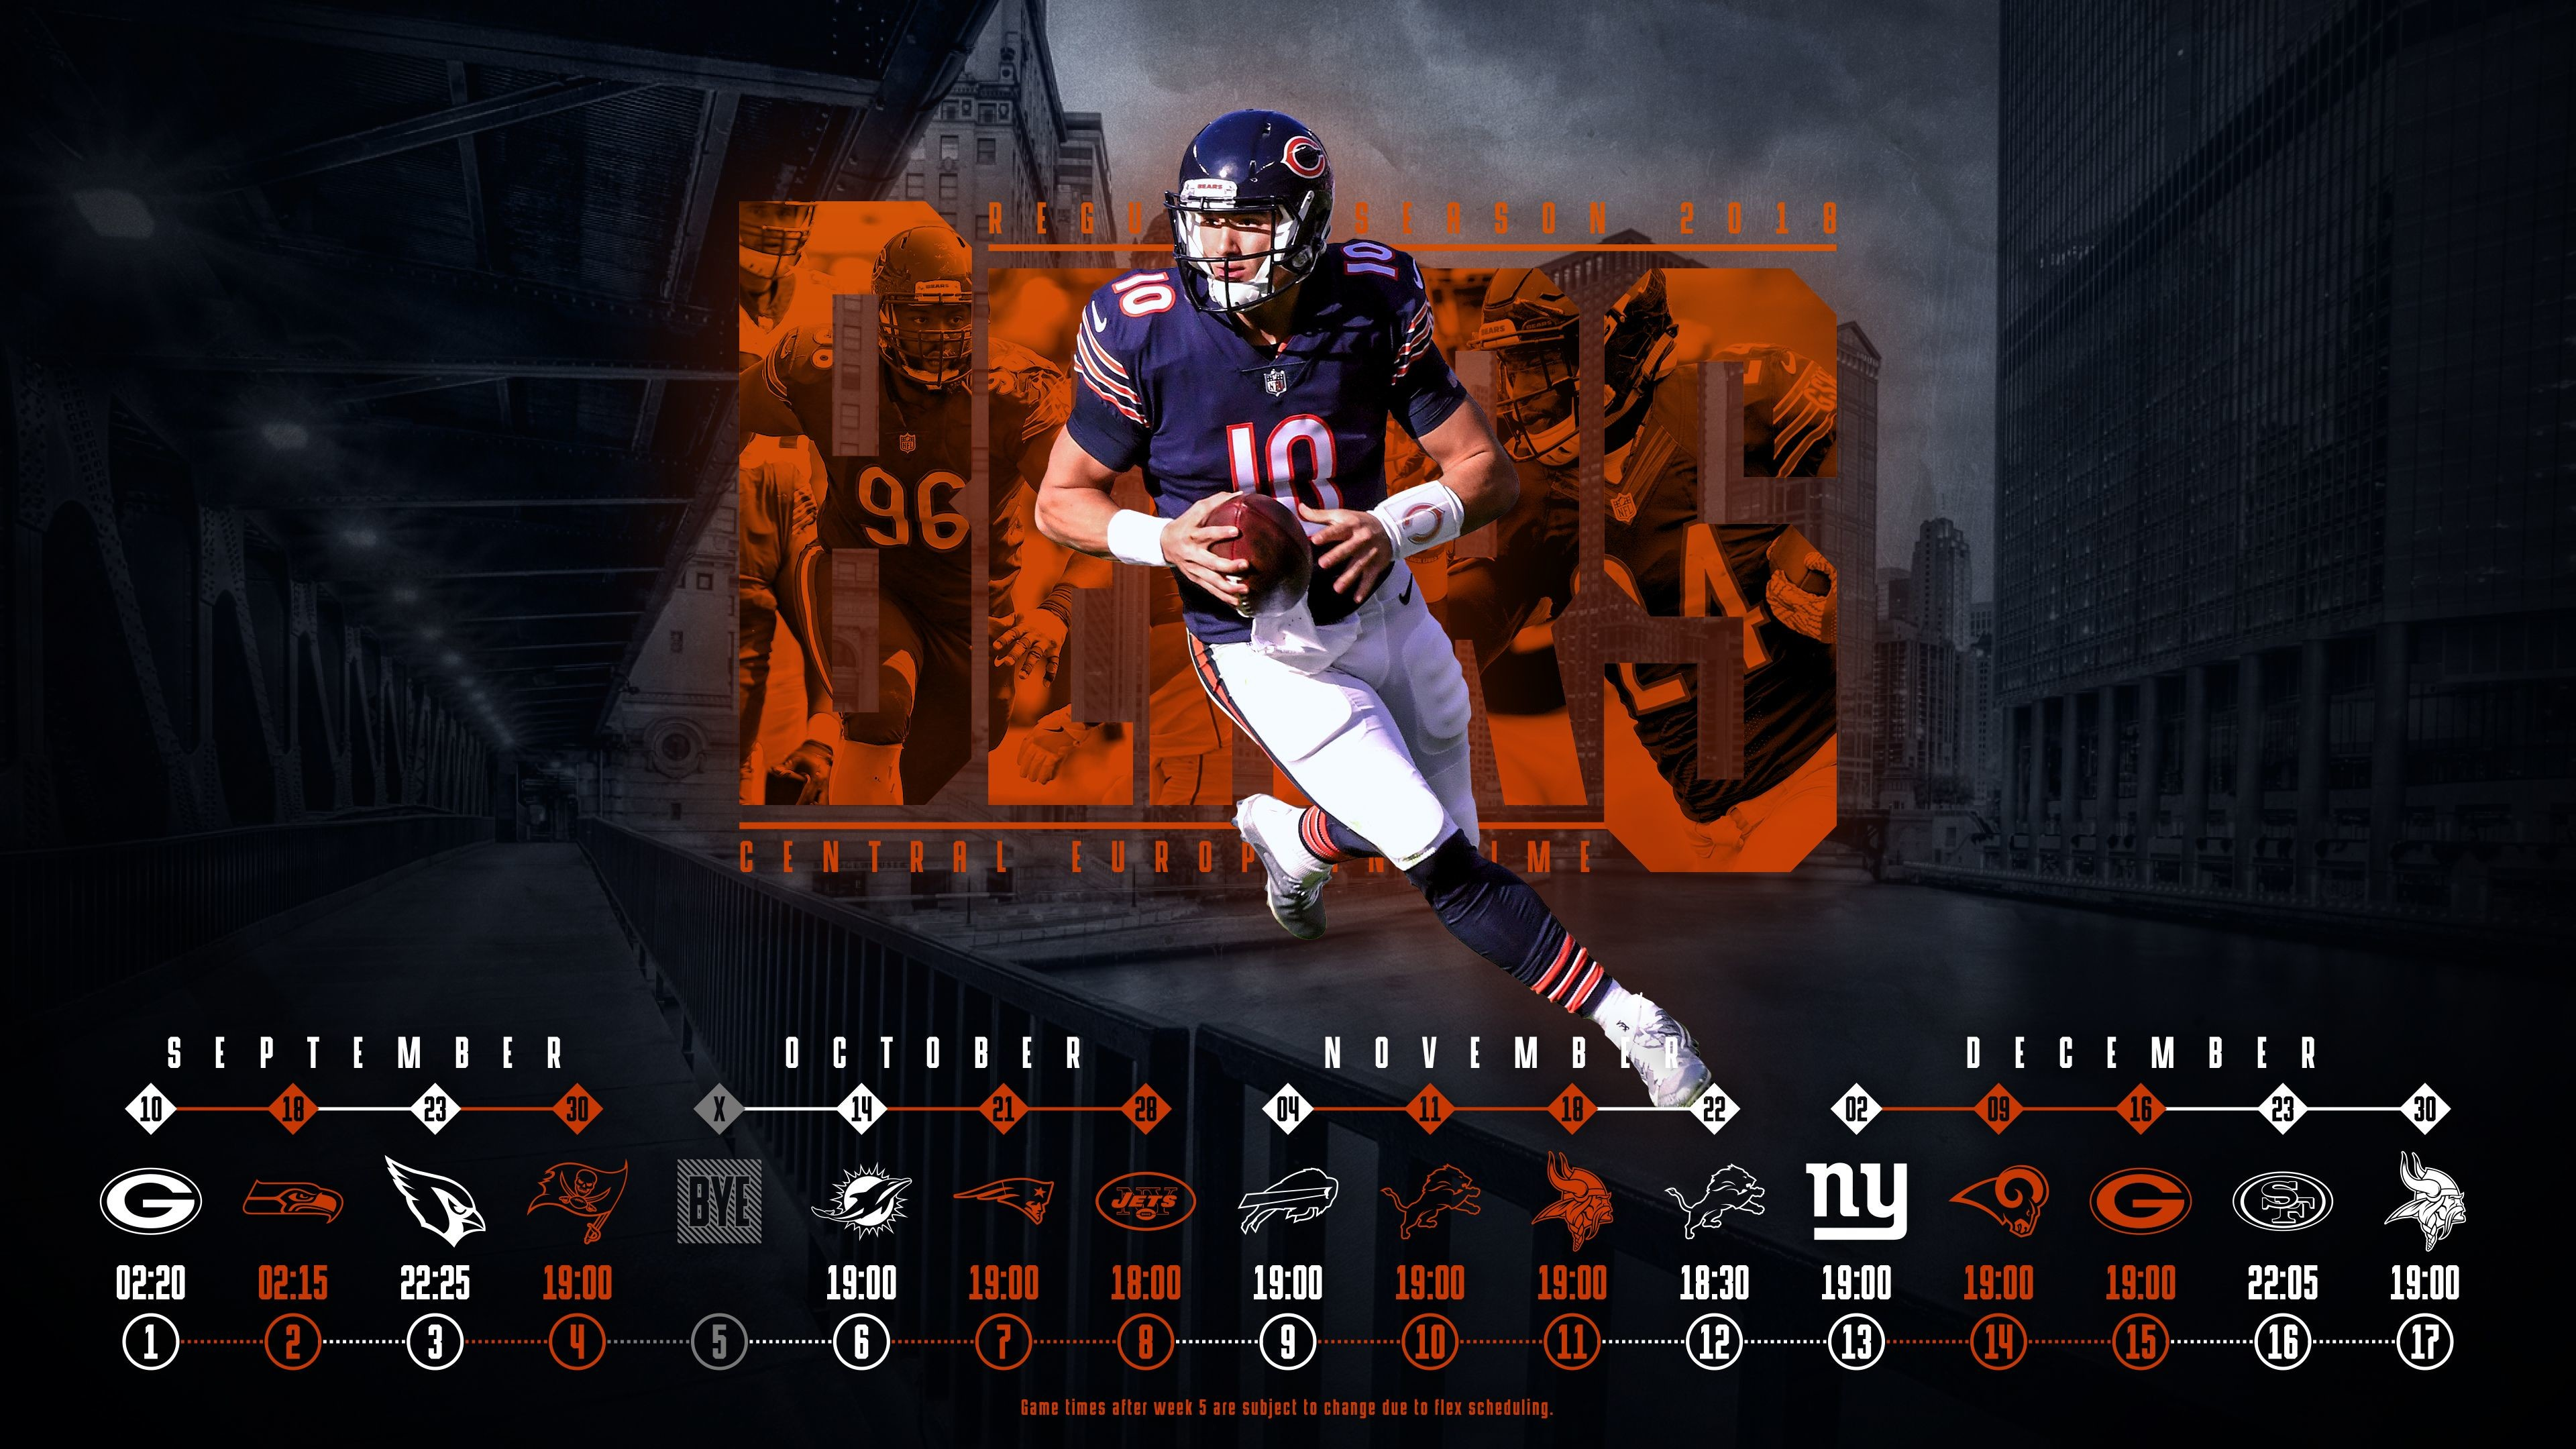 3840x2160 Schedule wallpaper for the Chicago Bears Regular Season, 2018 Central  European Time. Made by Tobler Gergő #tgersdiy